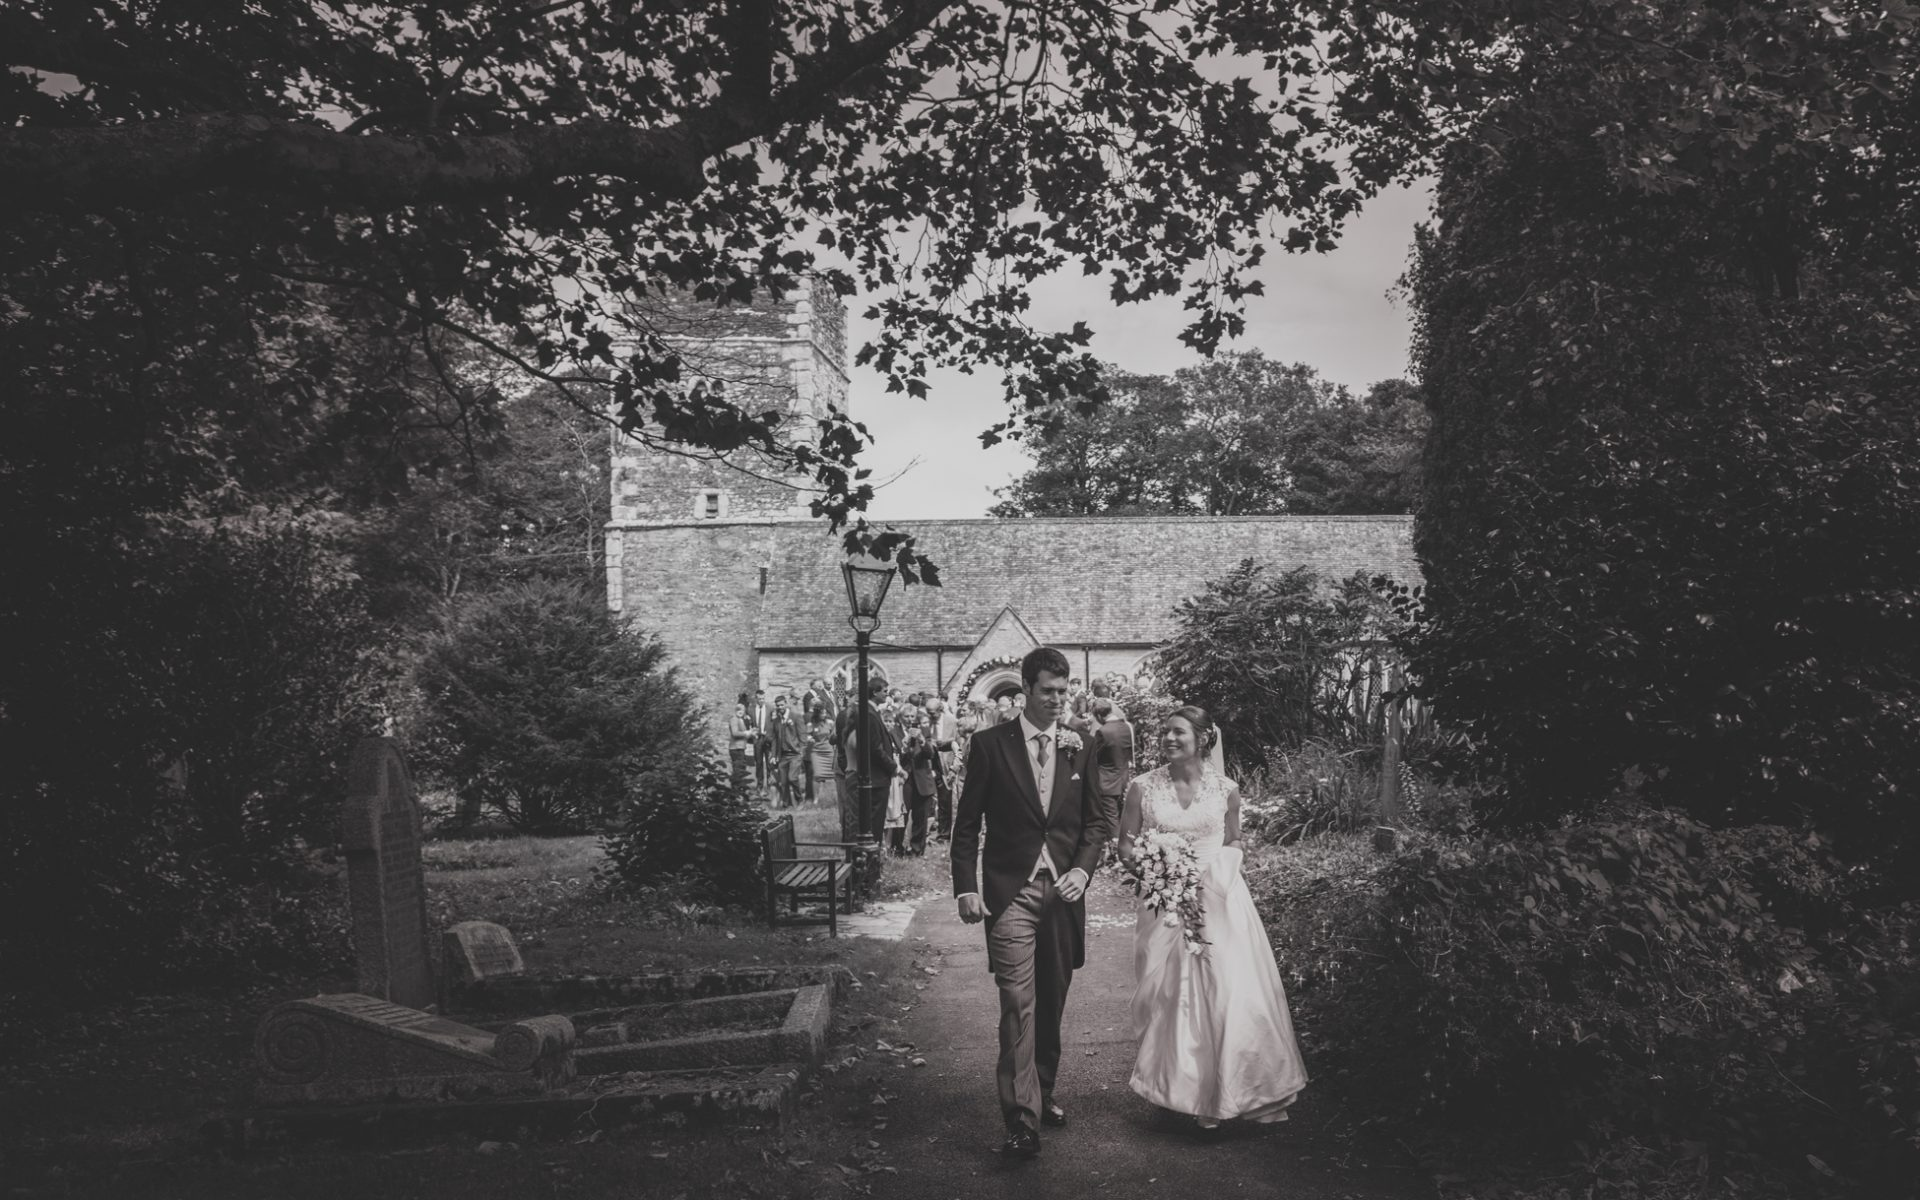 Cornwall Wedding Photography - Sarah & Andrew